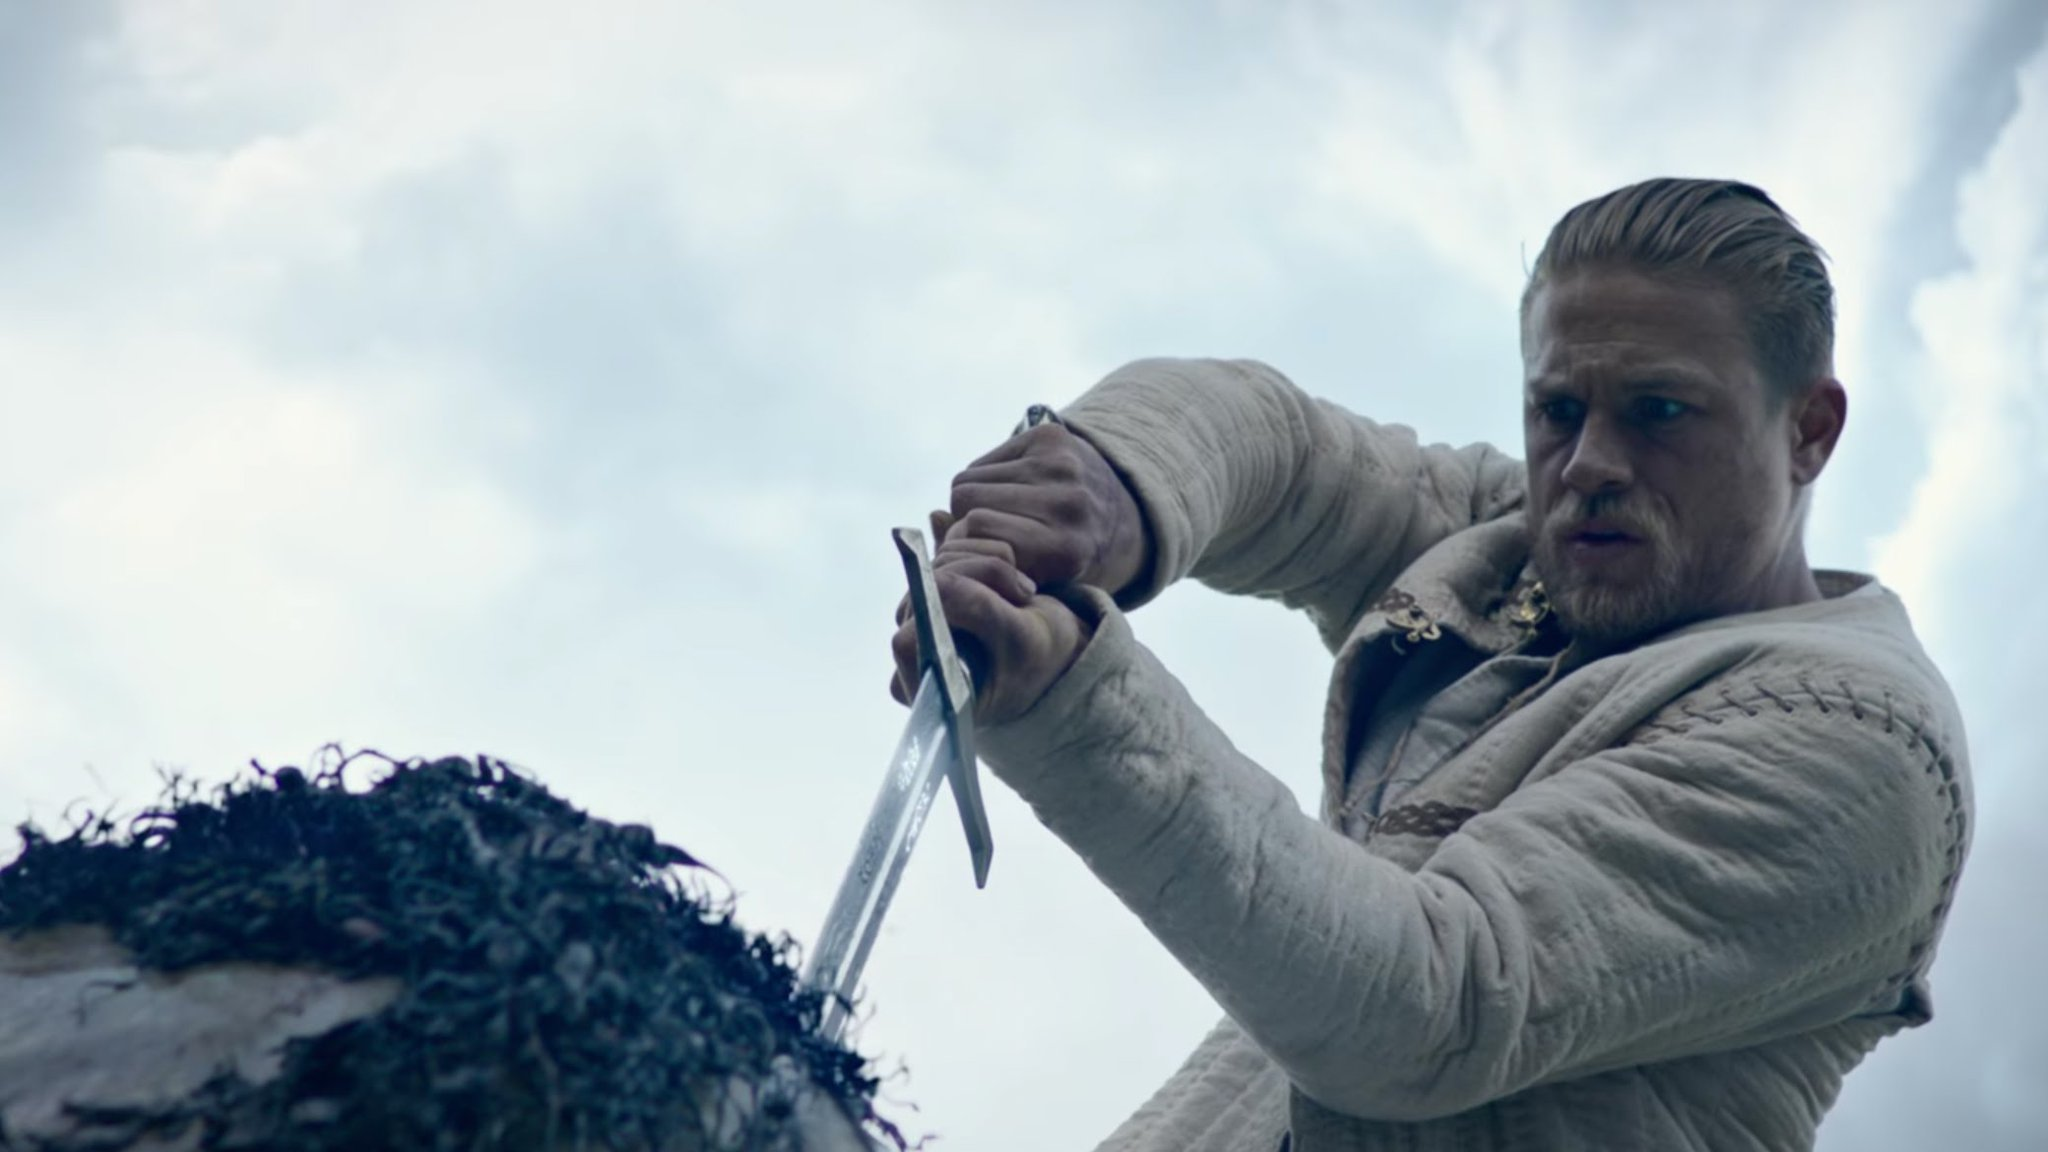 'King Arthur: Legend Of The Sword' (out today) is a laddy and loud fantasy romp. Our review: https://t.co/RuYbur56Hu https://t.co/q0FqFxTKYG